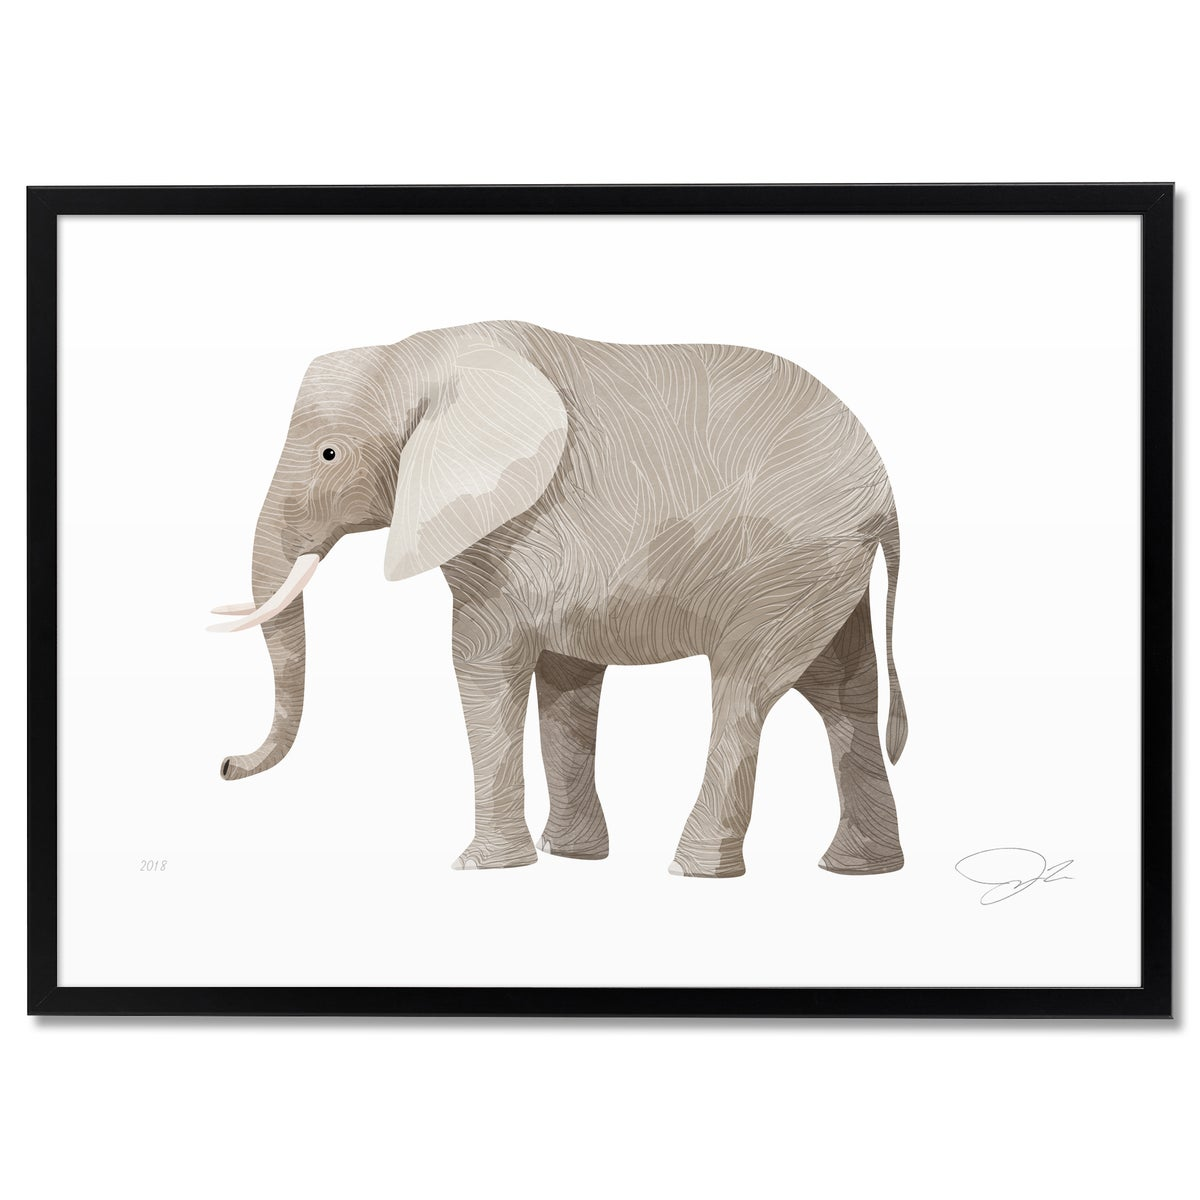 Image of Print: Elephant